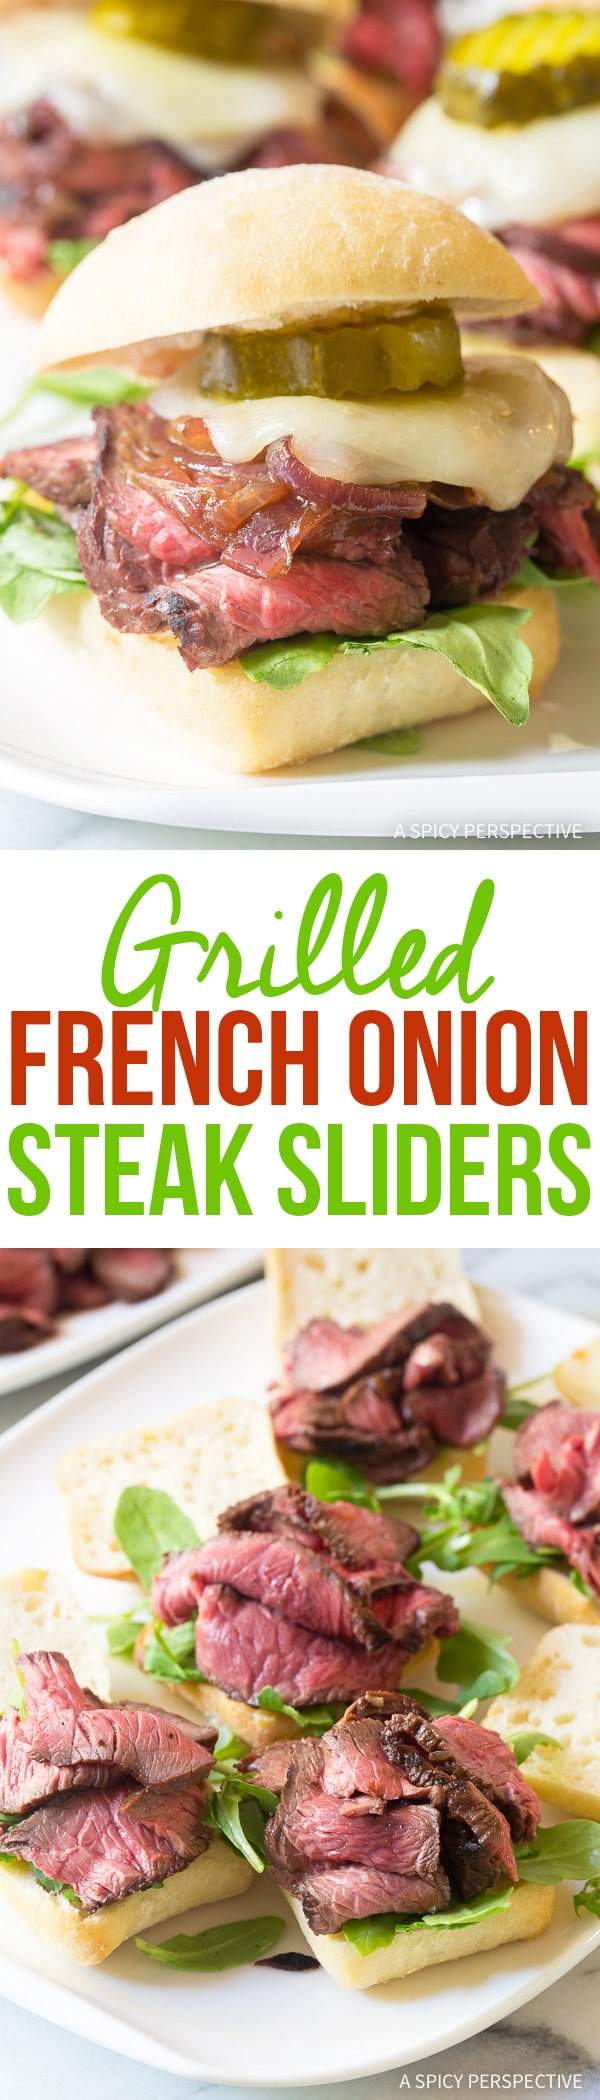 Amazing Grilled French Onion Steak Sliders Recipe